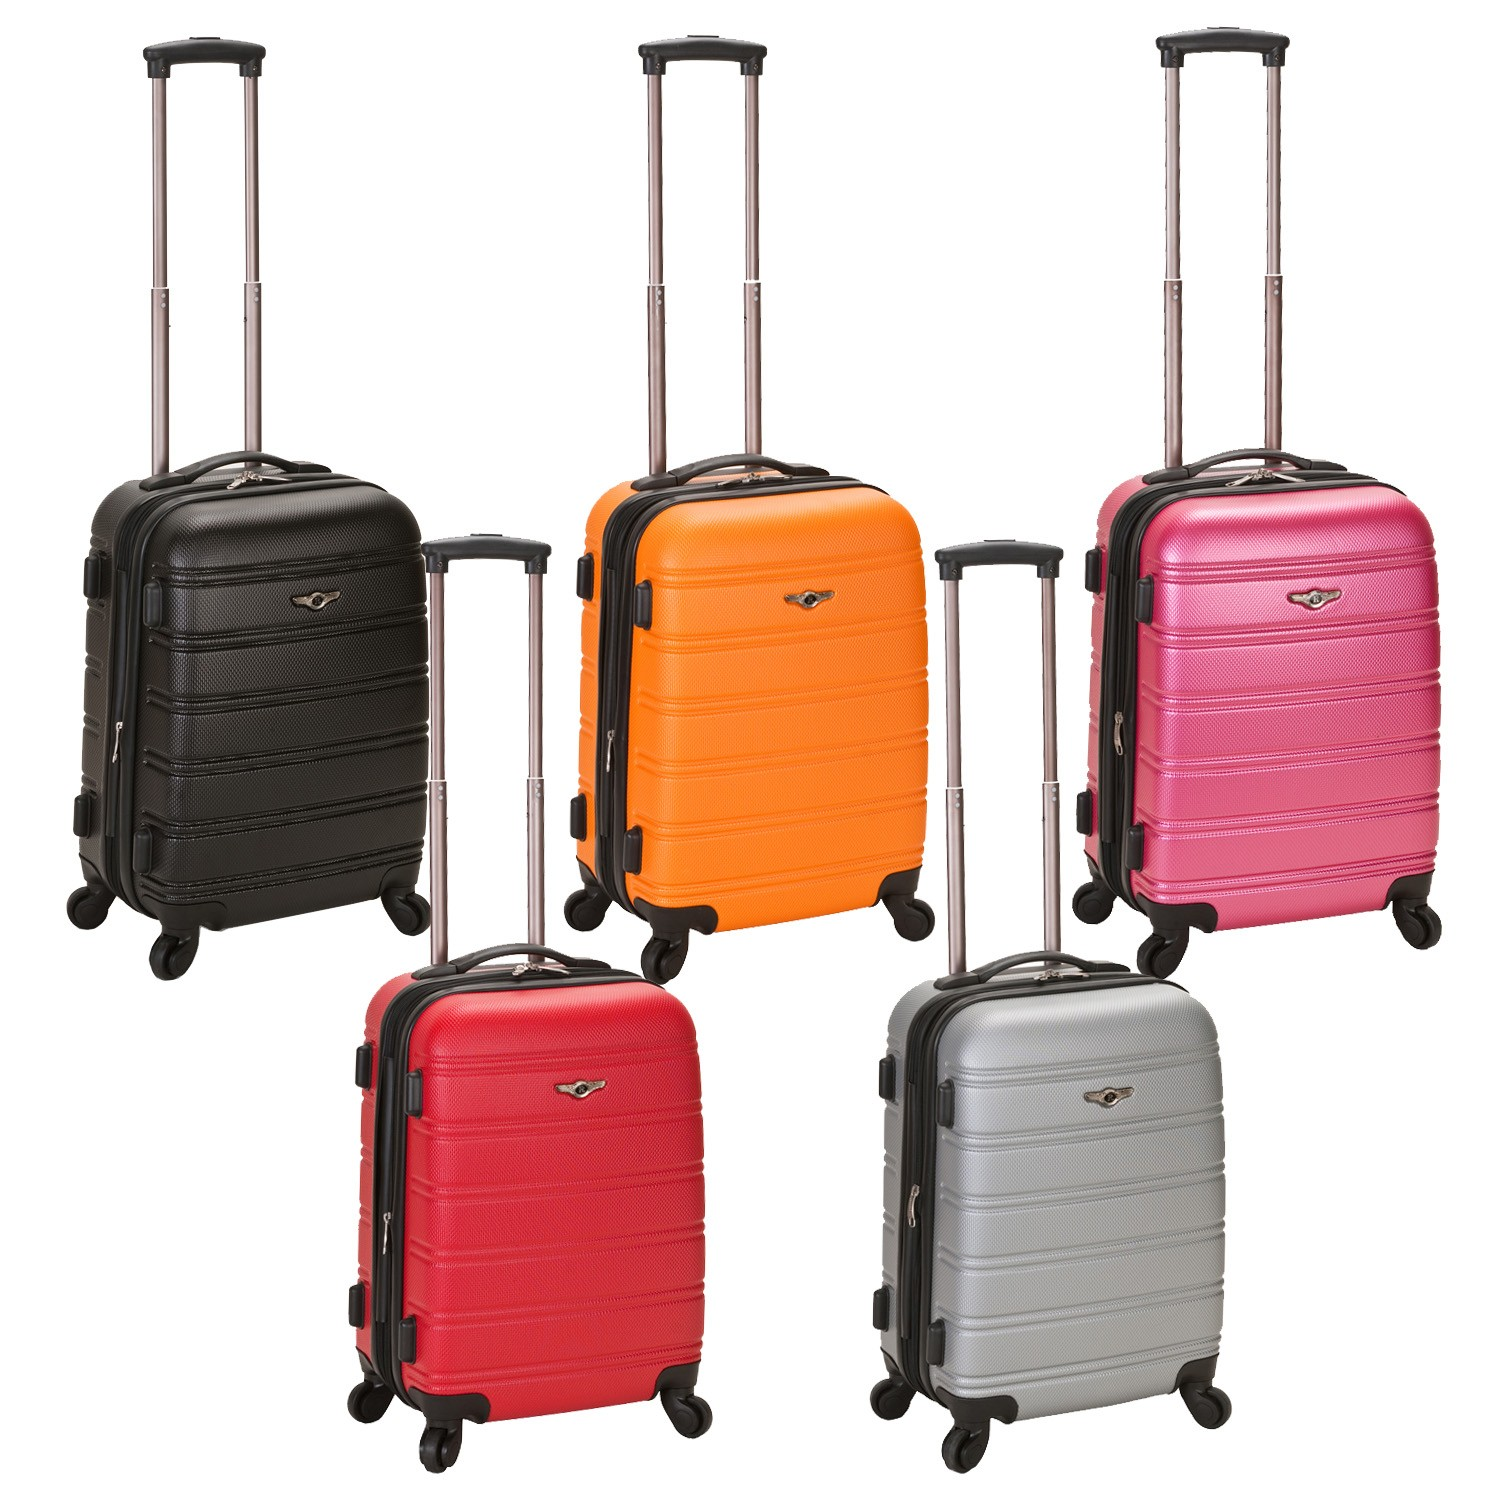 Luggage Sets - LuggageMore.com: Carry-on Luggage, Kids Luggage ...